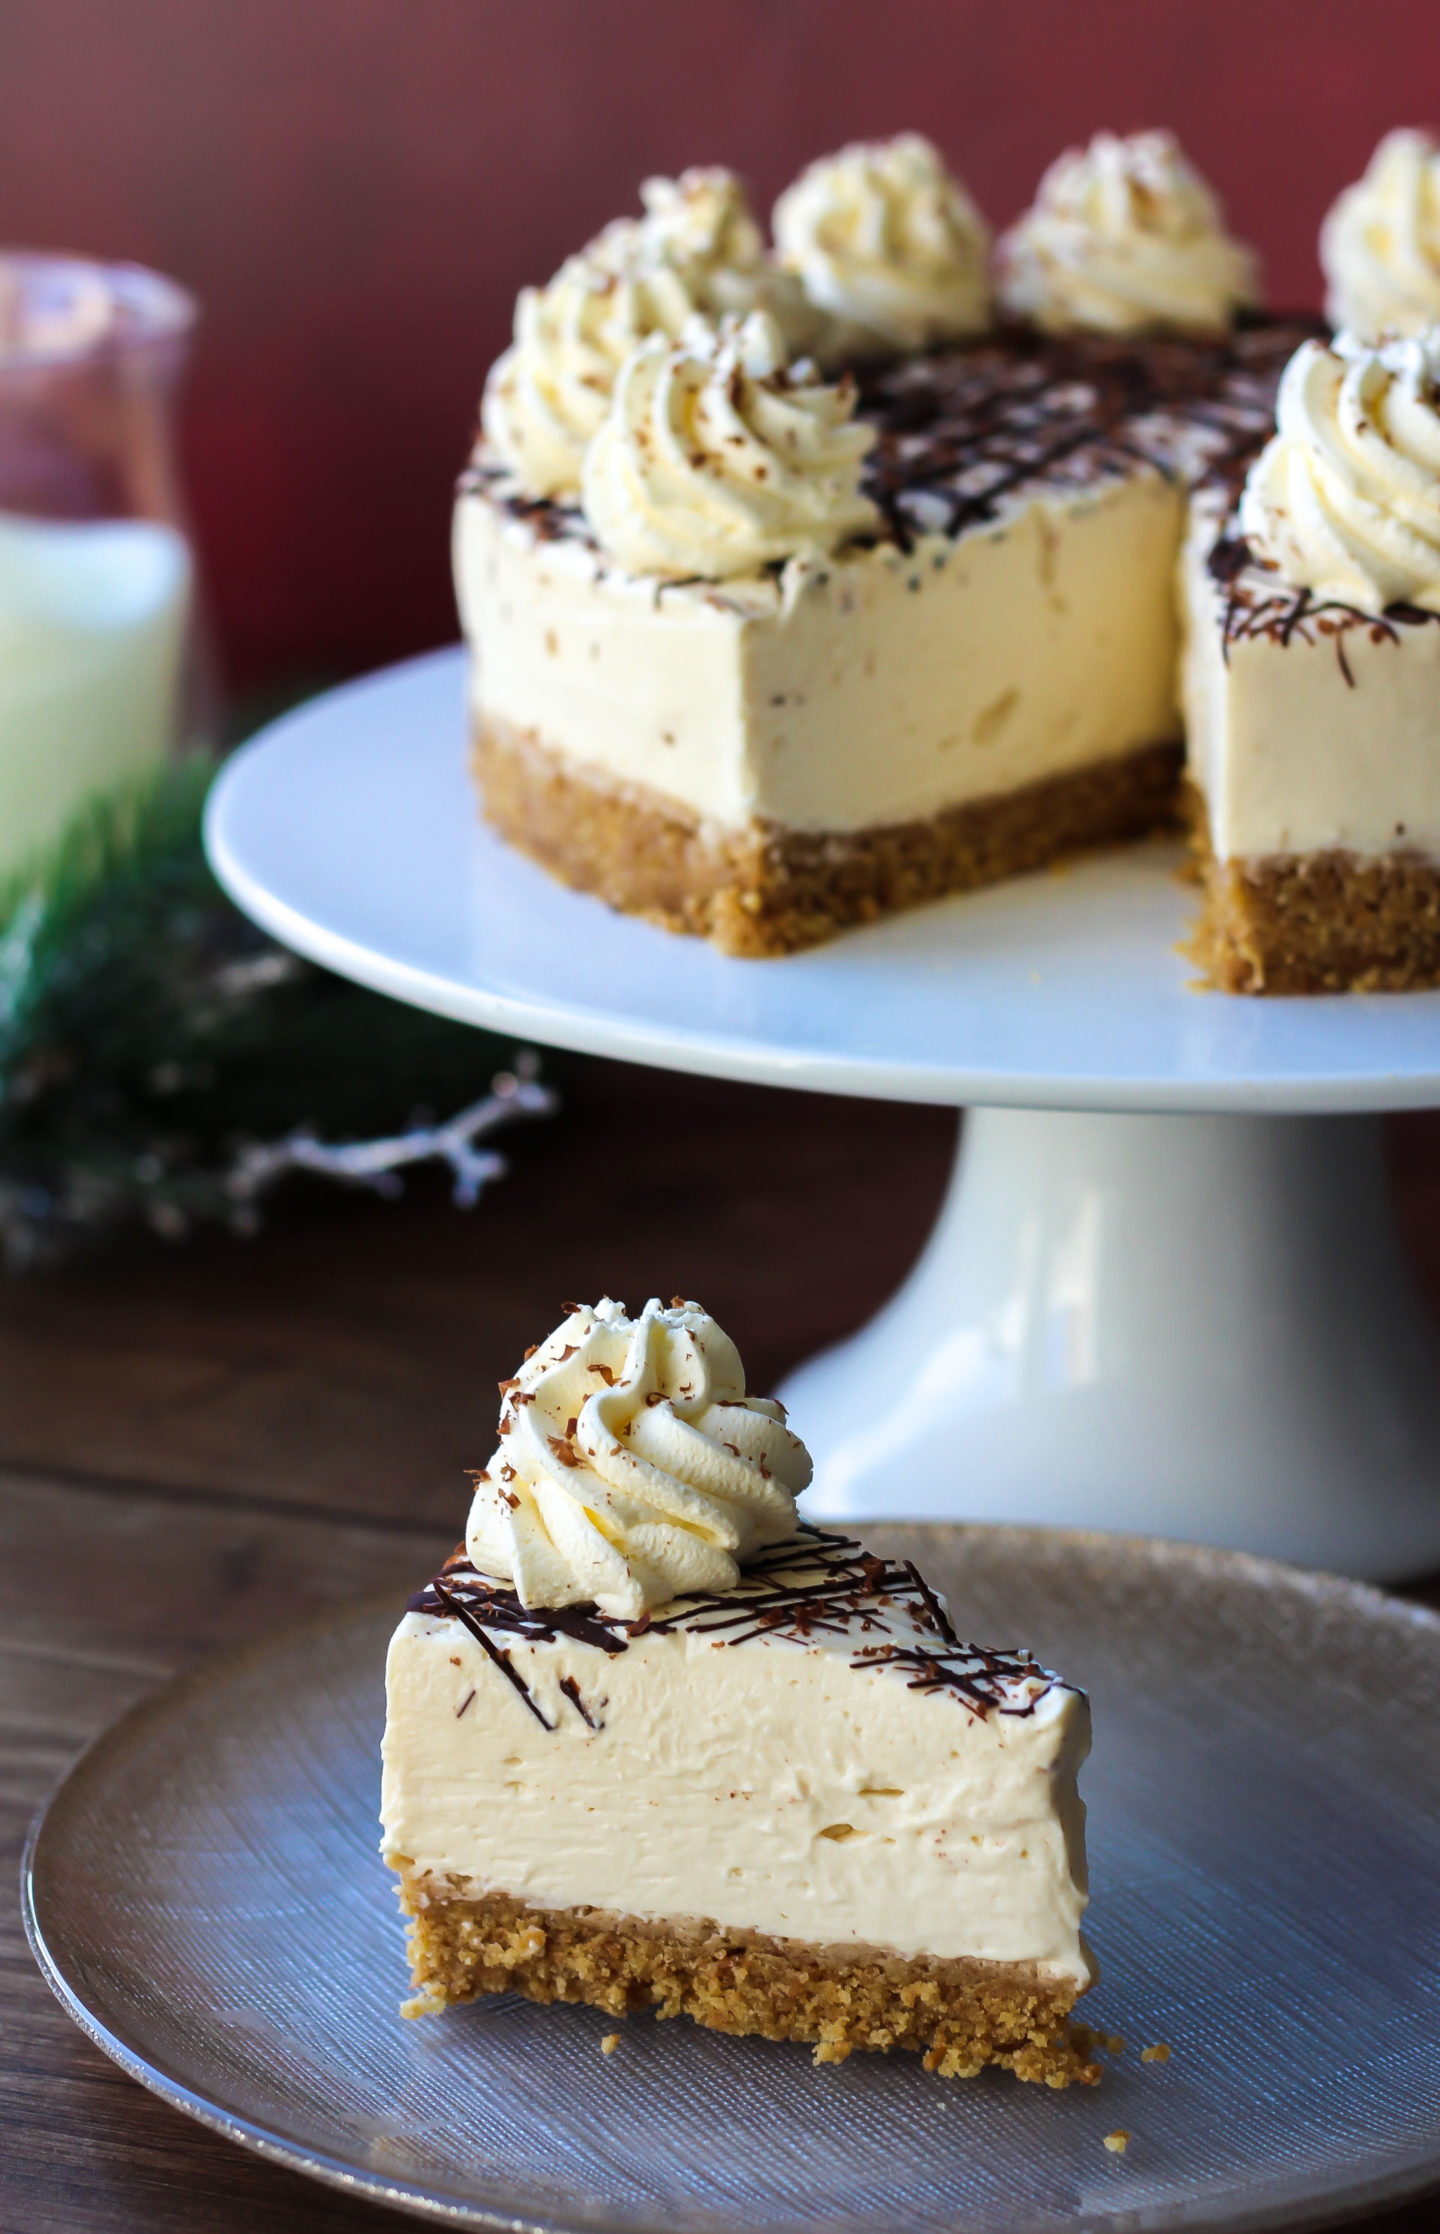 Slice of no-bake Baileys cheesecake with rest of cheesecake on a cake stand in the background